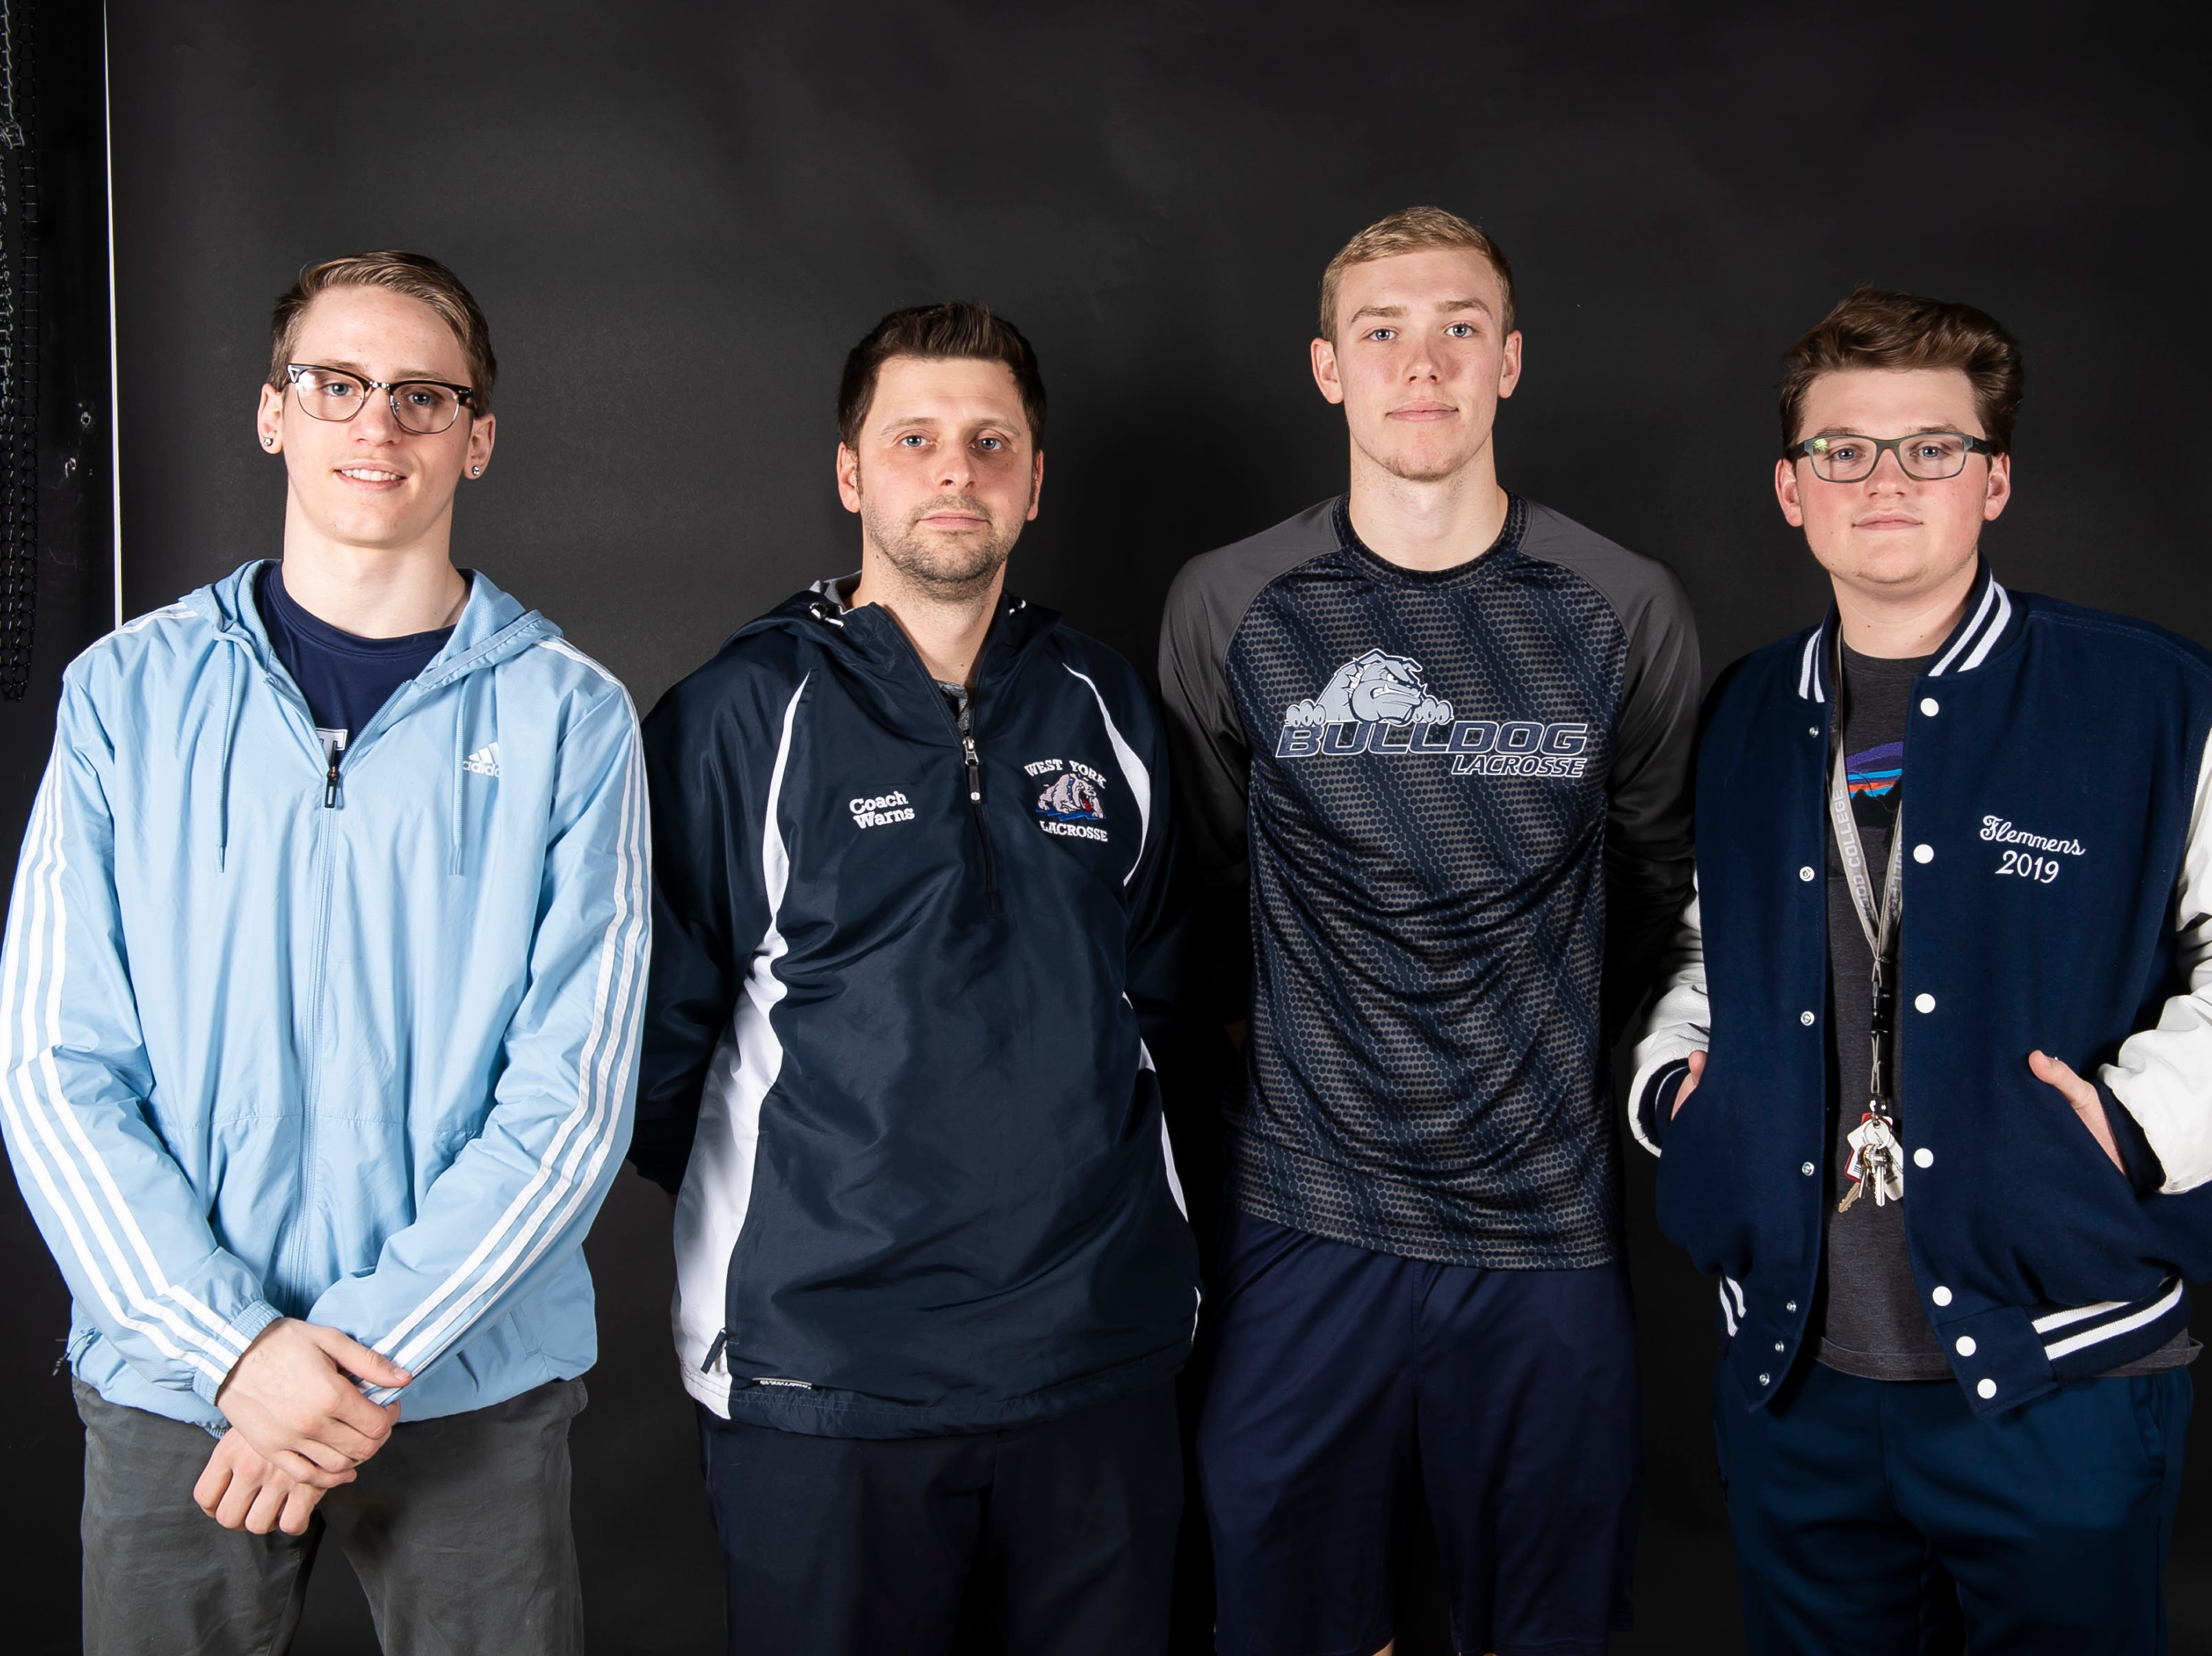 (From left) West York lacrosse's Jordan Billet, coach Joe Warns, Colby Goodling and Samuel Flemmens pose in the GameTimePA photo booth during spring sports media day in York Sunday, March 10, 2019.